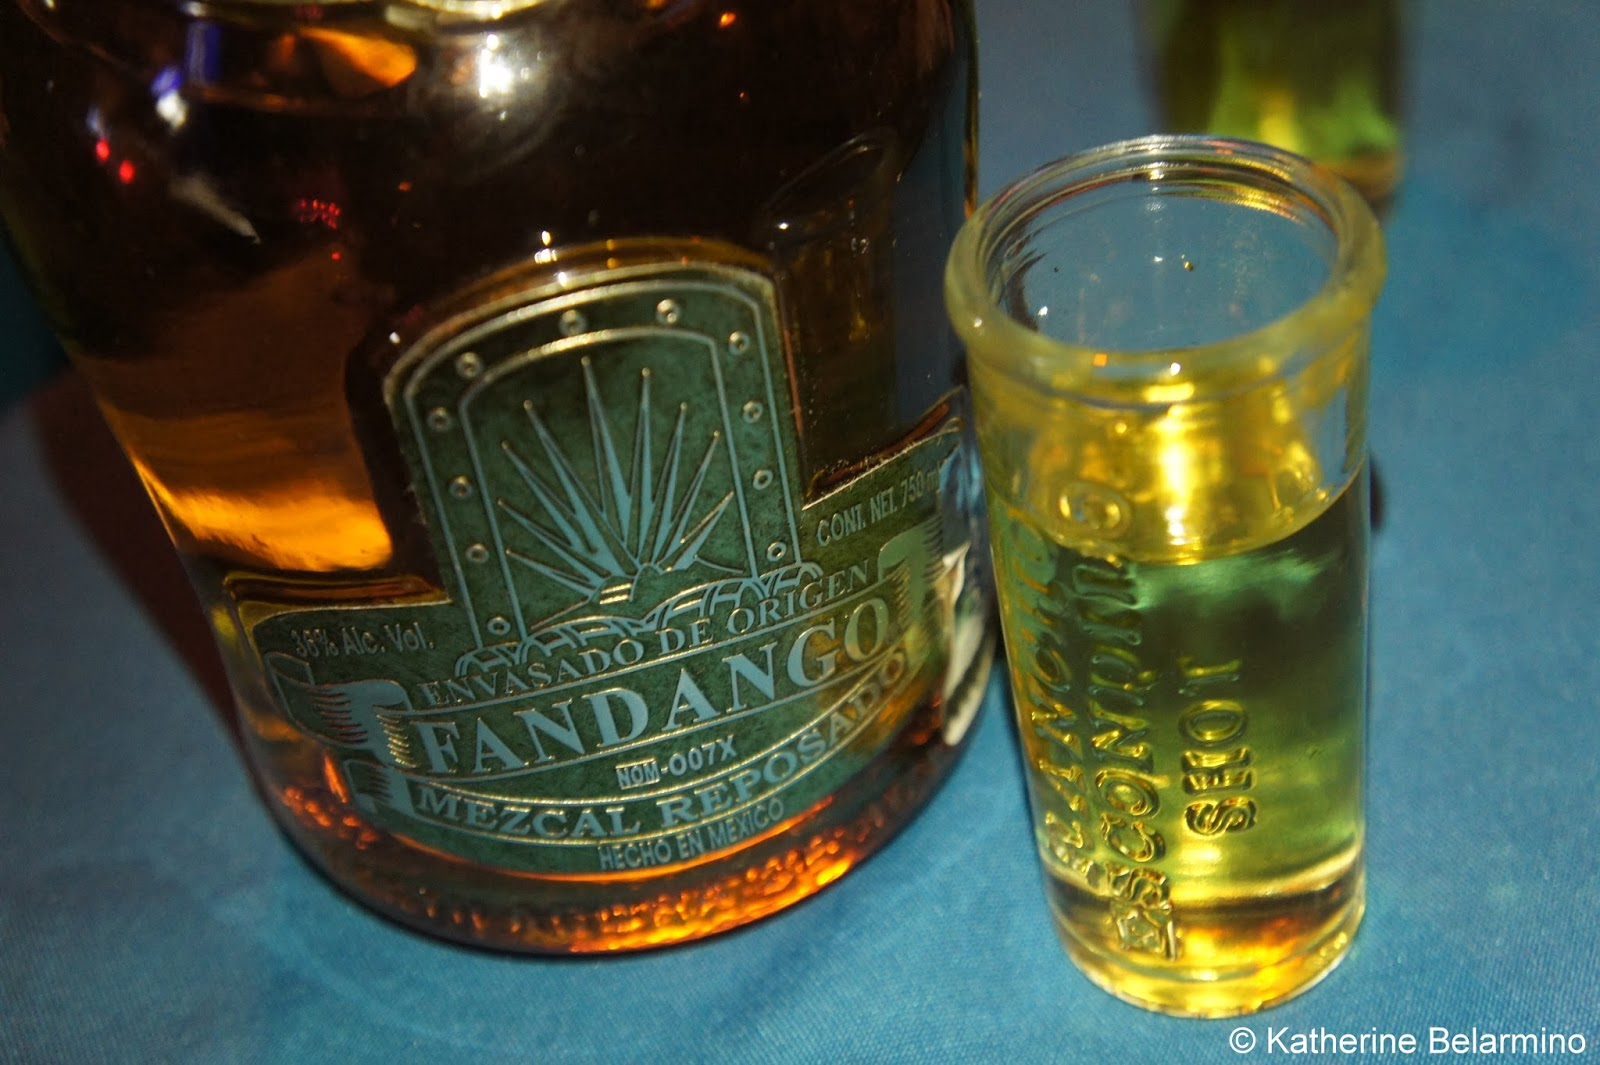 For mezcal with a worm, try Gusano Rojo Mezcal. For a much higher ...